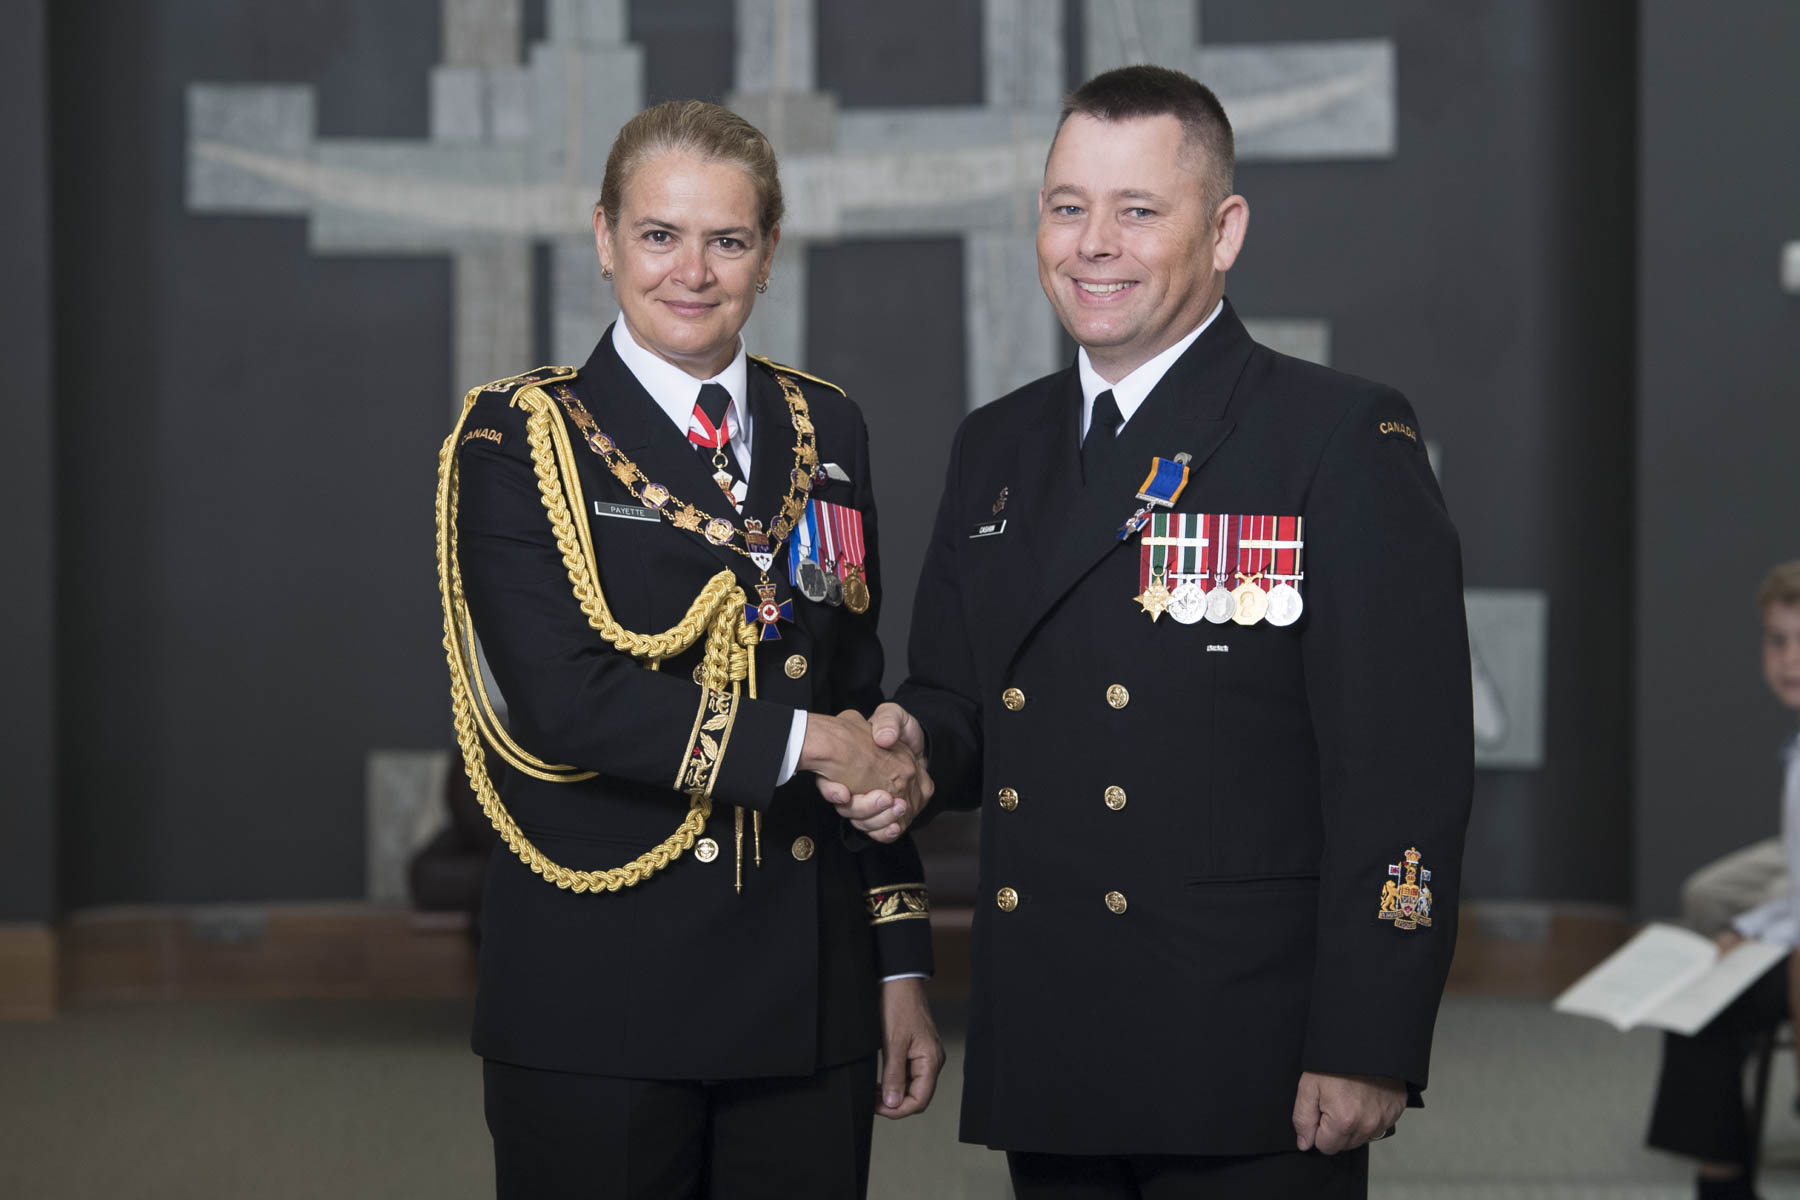 Her Excellency bestowed the honour of Member of the Order of Military Merit upon Chief Petty Officer 1st Class Martin David Cashin, M.M.M., C.D.